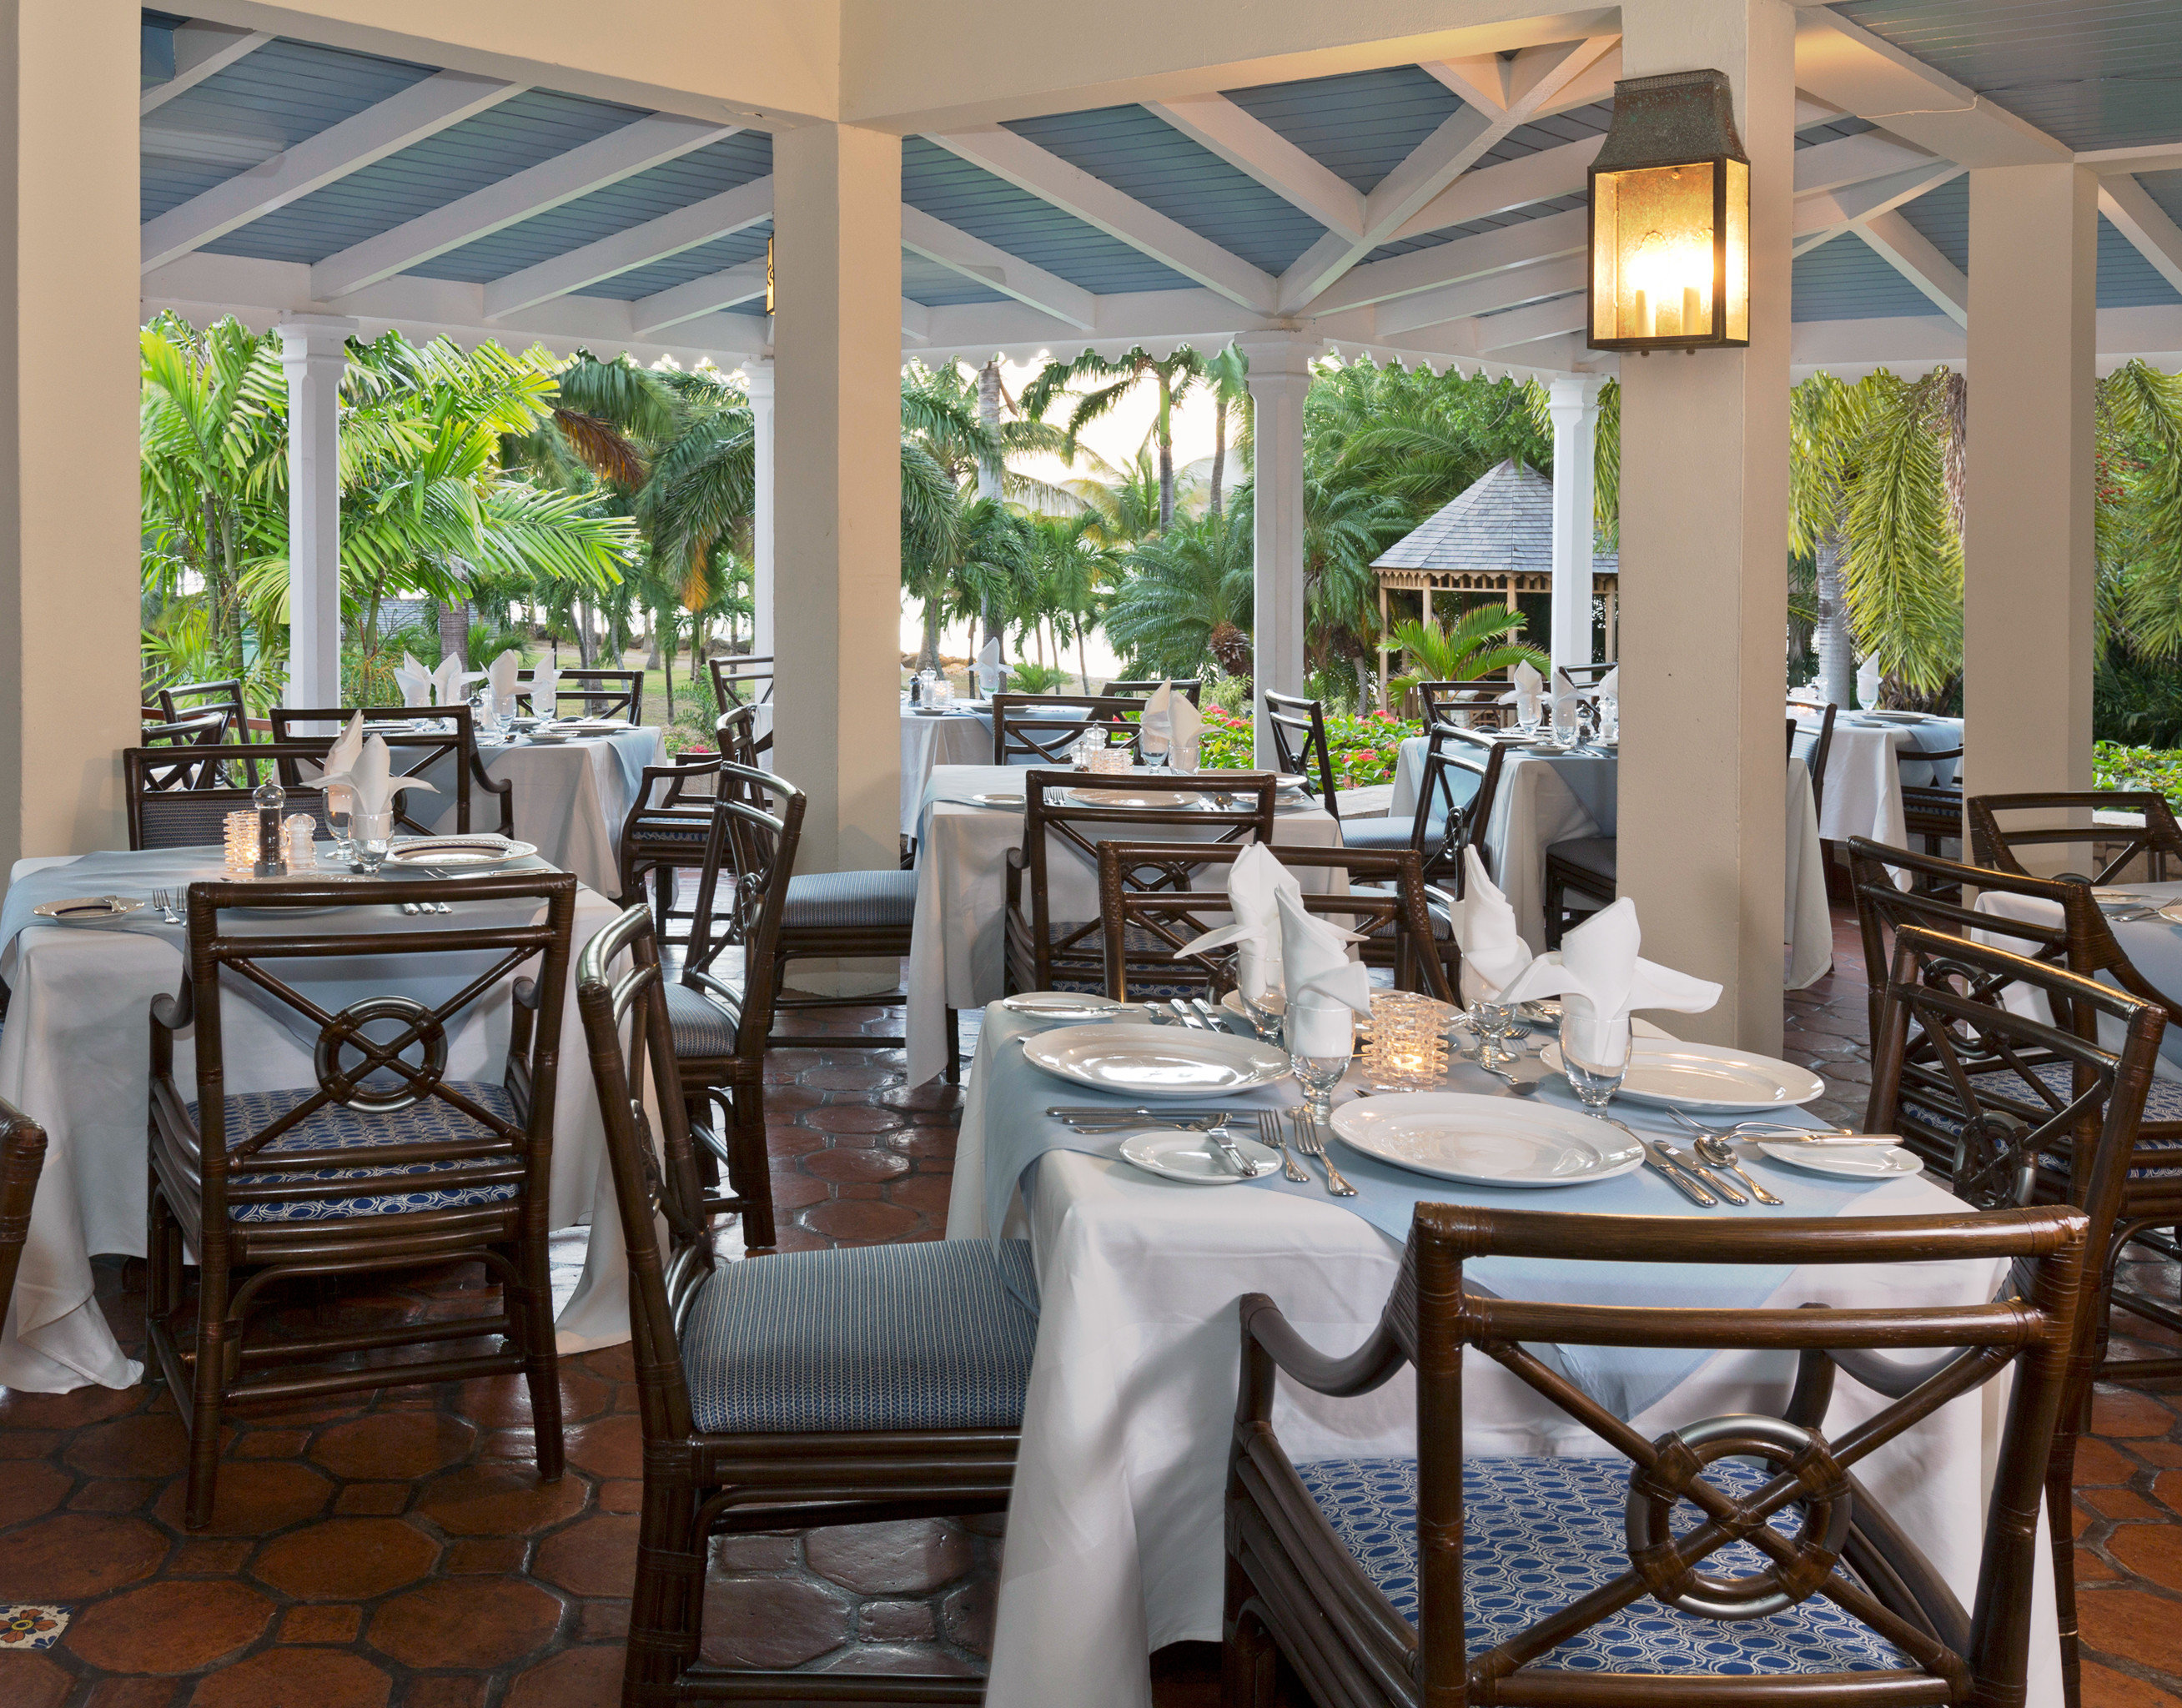 Beachfront Dining Drink Eat Island Romance Romantic Tropical chair property restaurant Resort home porch Villa cottage outdoor structure set dining table